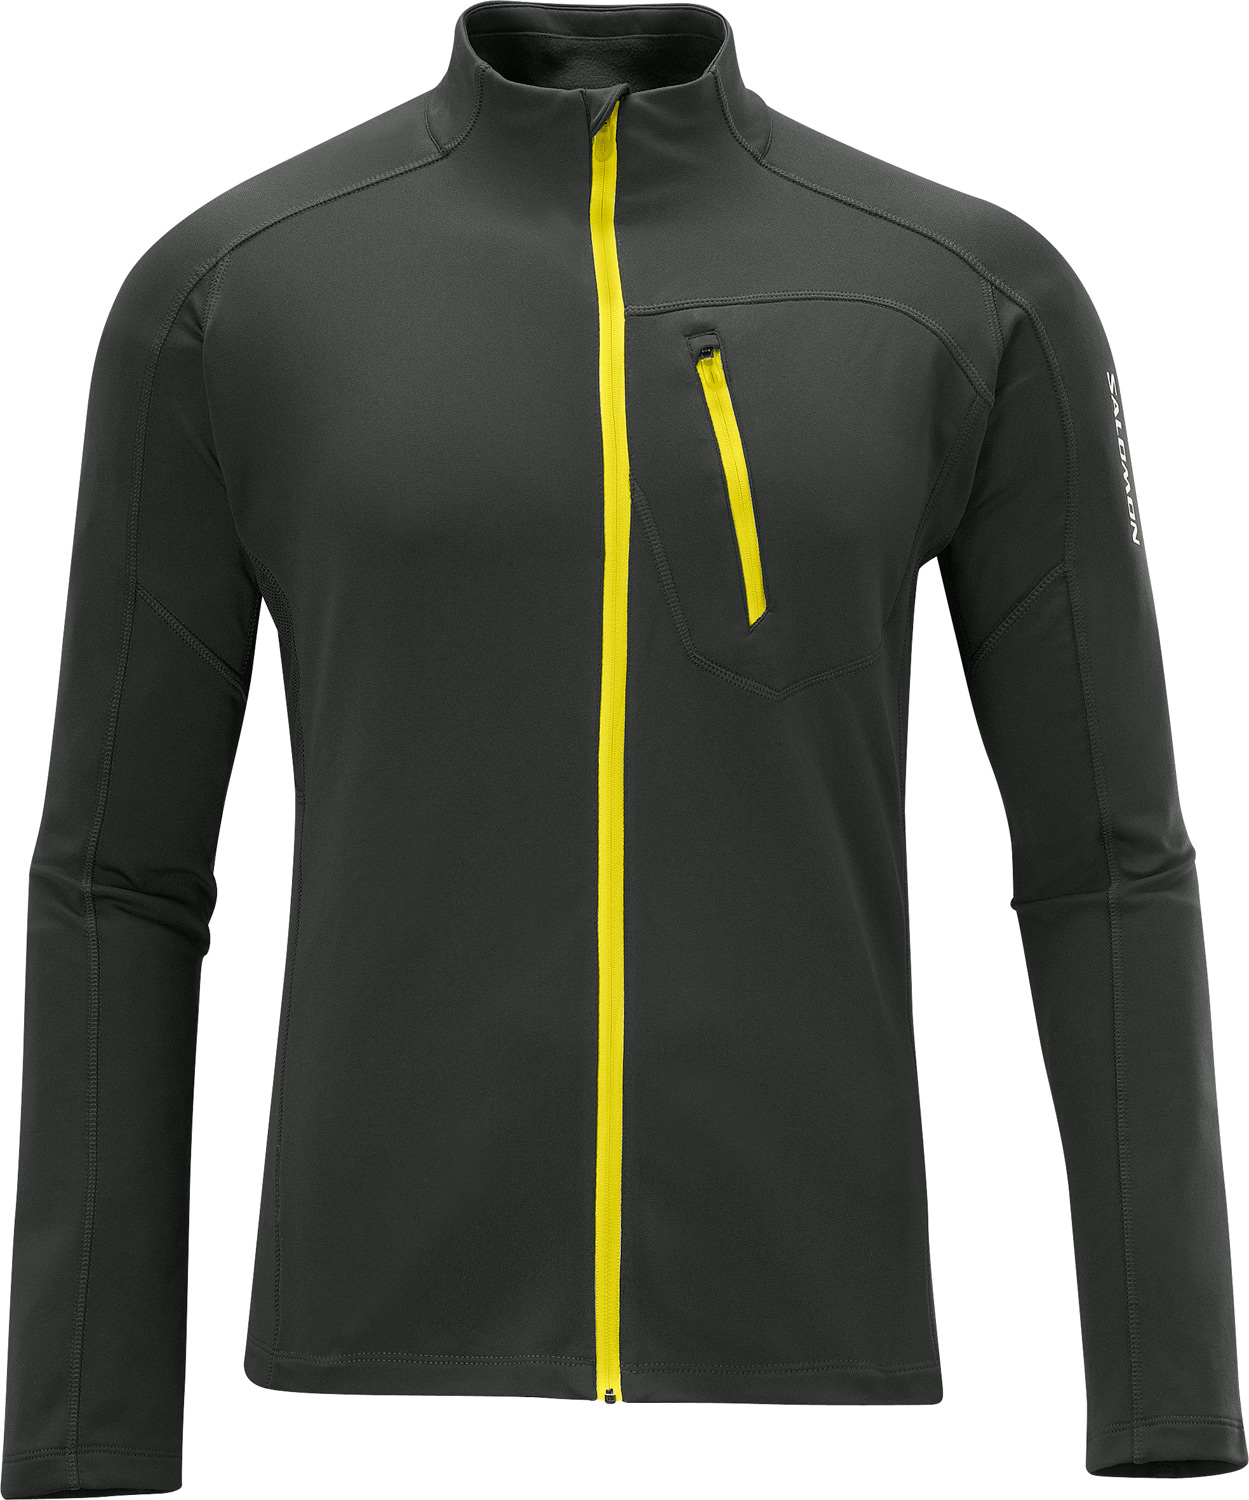 Camp and Hike Soft, breathable, fitted full zip midlayer ideal for aerobic sports. A best sellerKey Features of the Salomon Xa Midlayer Fleece: Smart skin Actitherm Actilite 1 Chest pocket Reflective branding Active fit - $67.95